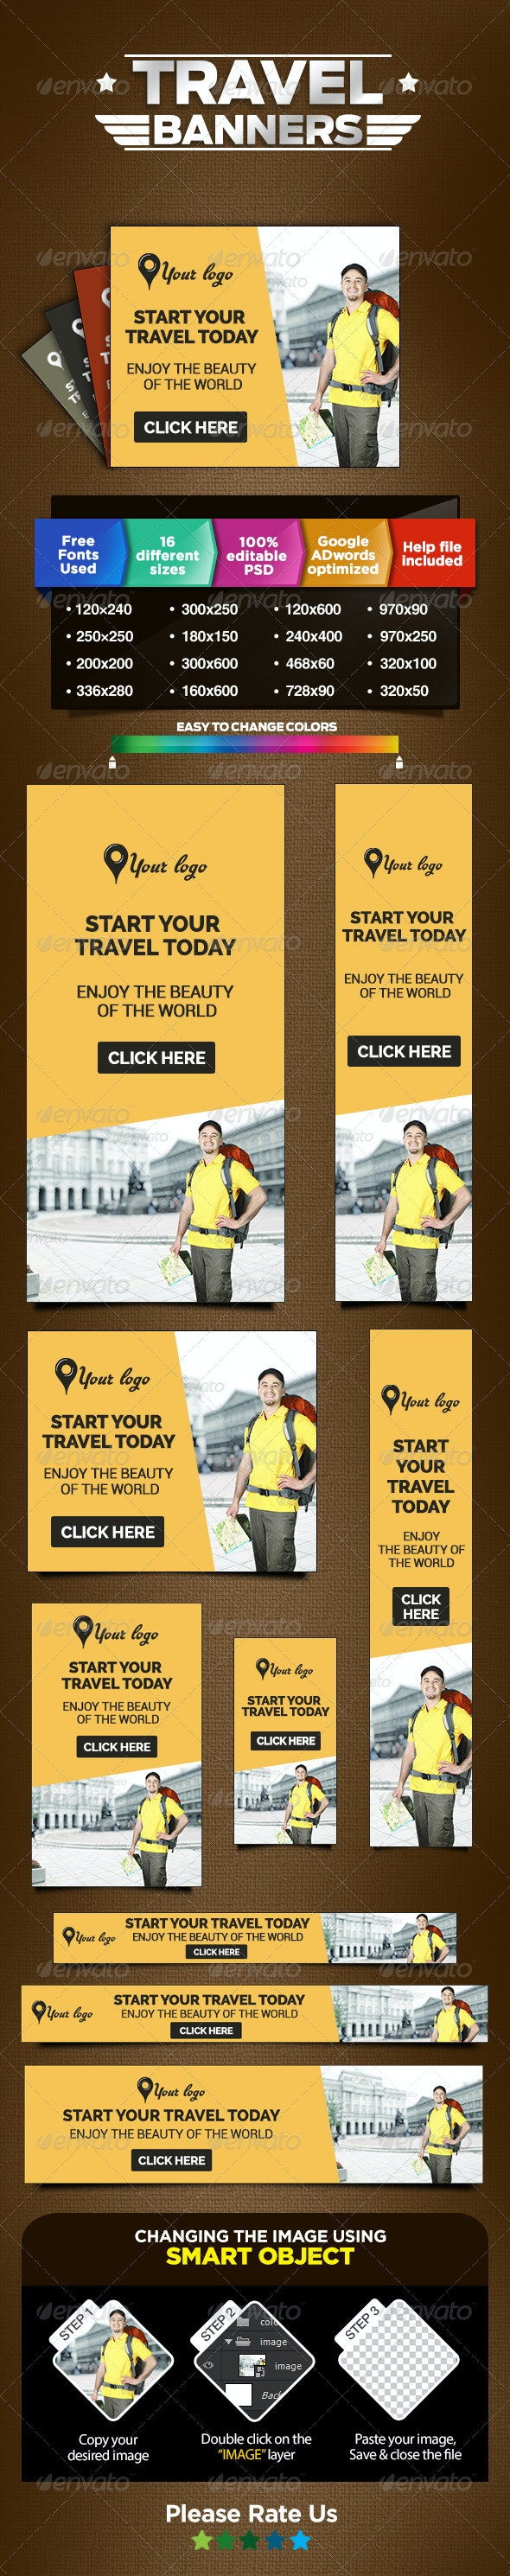 Travel Ads - Web Marketing Banners - Banners & Ads Web Elements